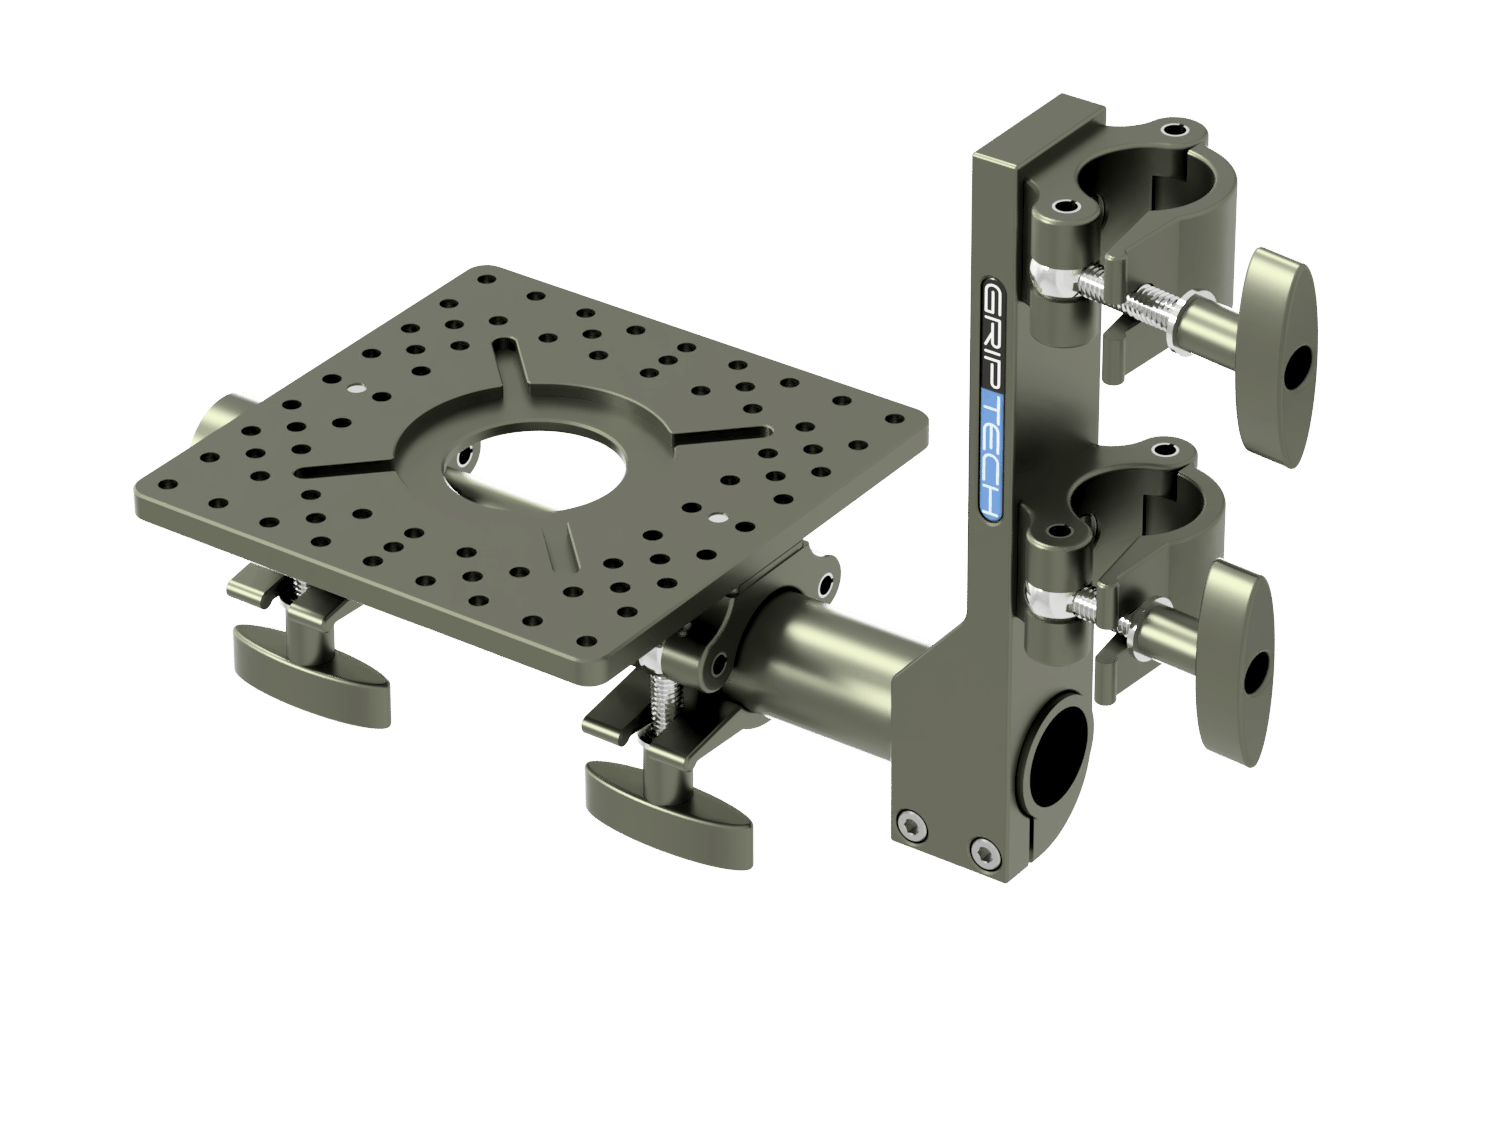 T Bar Bracket+ 1 Scaff Tube (L=600mm) + 1 Small Mounting Plate  + 2 Scaff Half Clamps